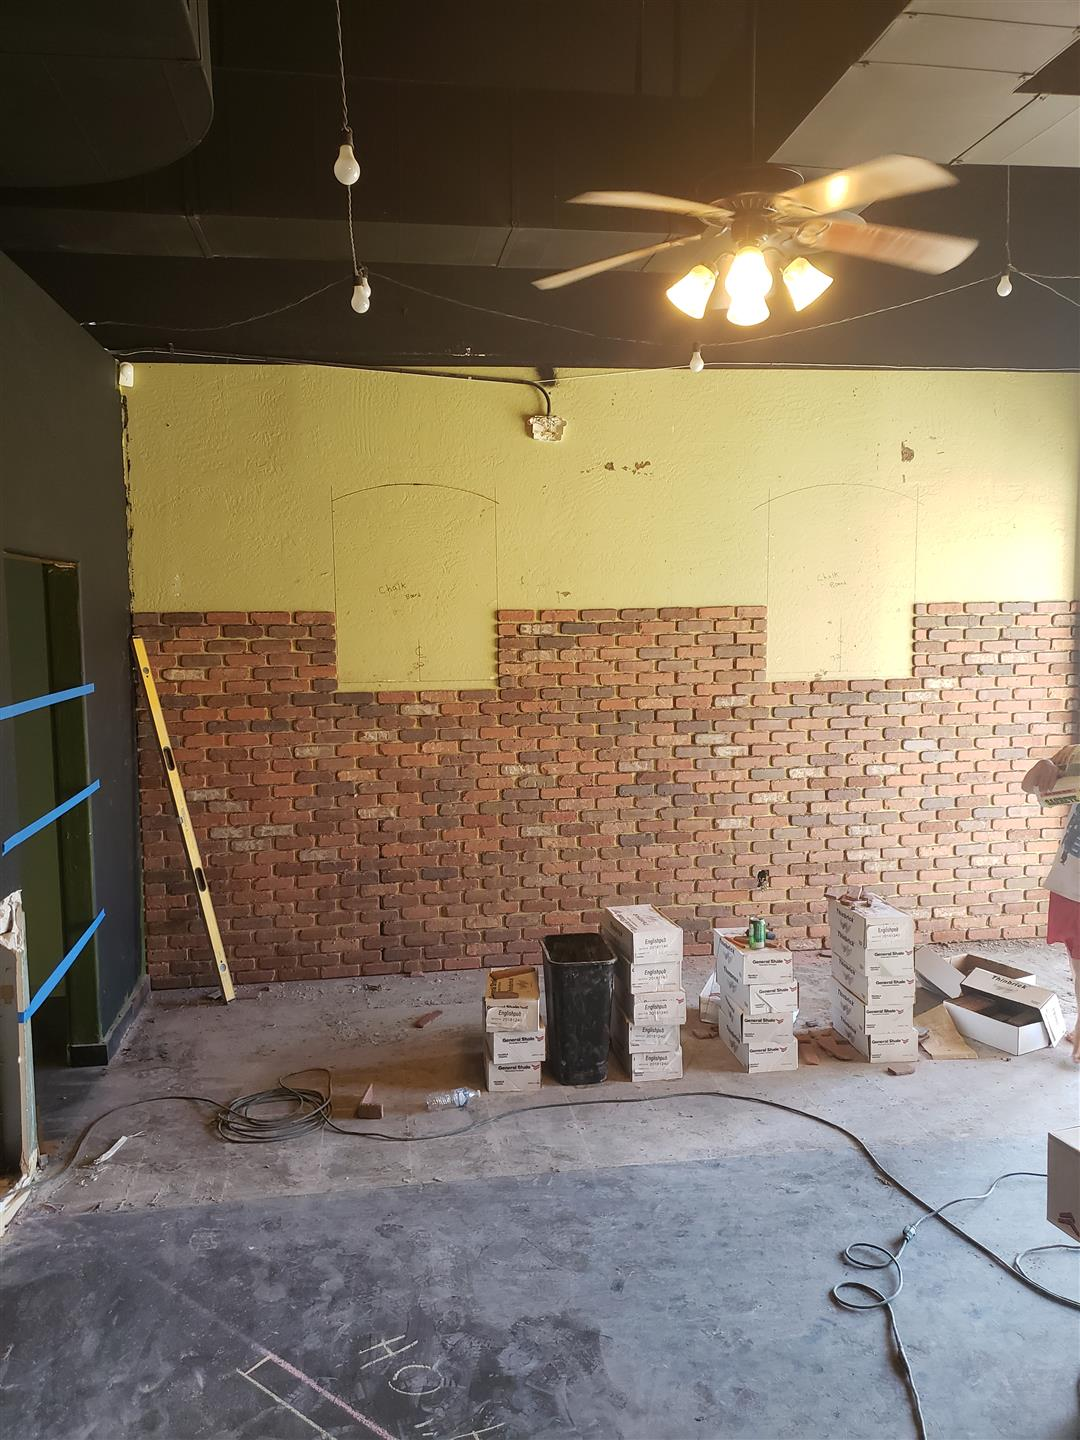 interior view of renovations on building - laying down brick